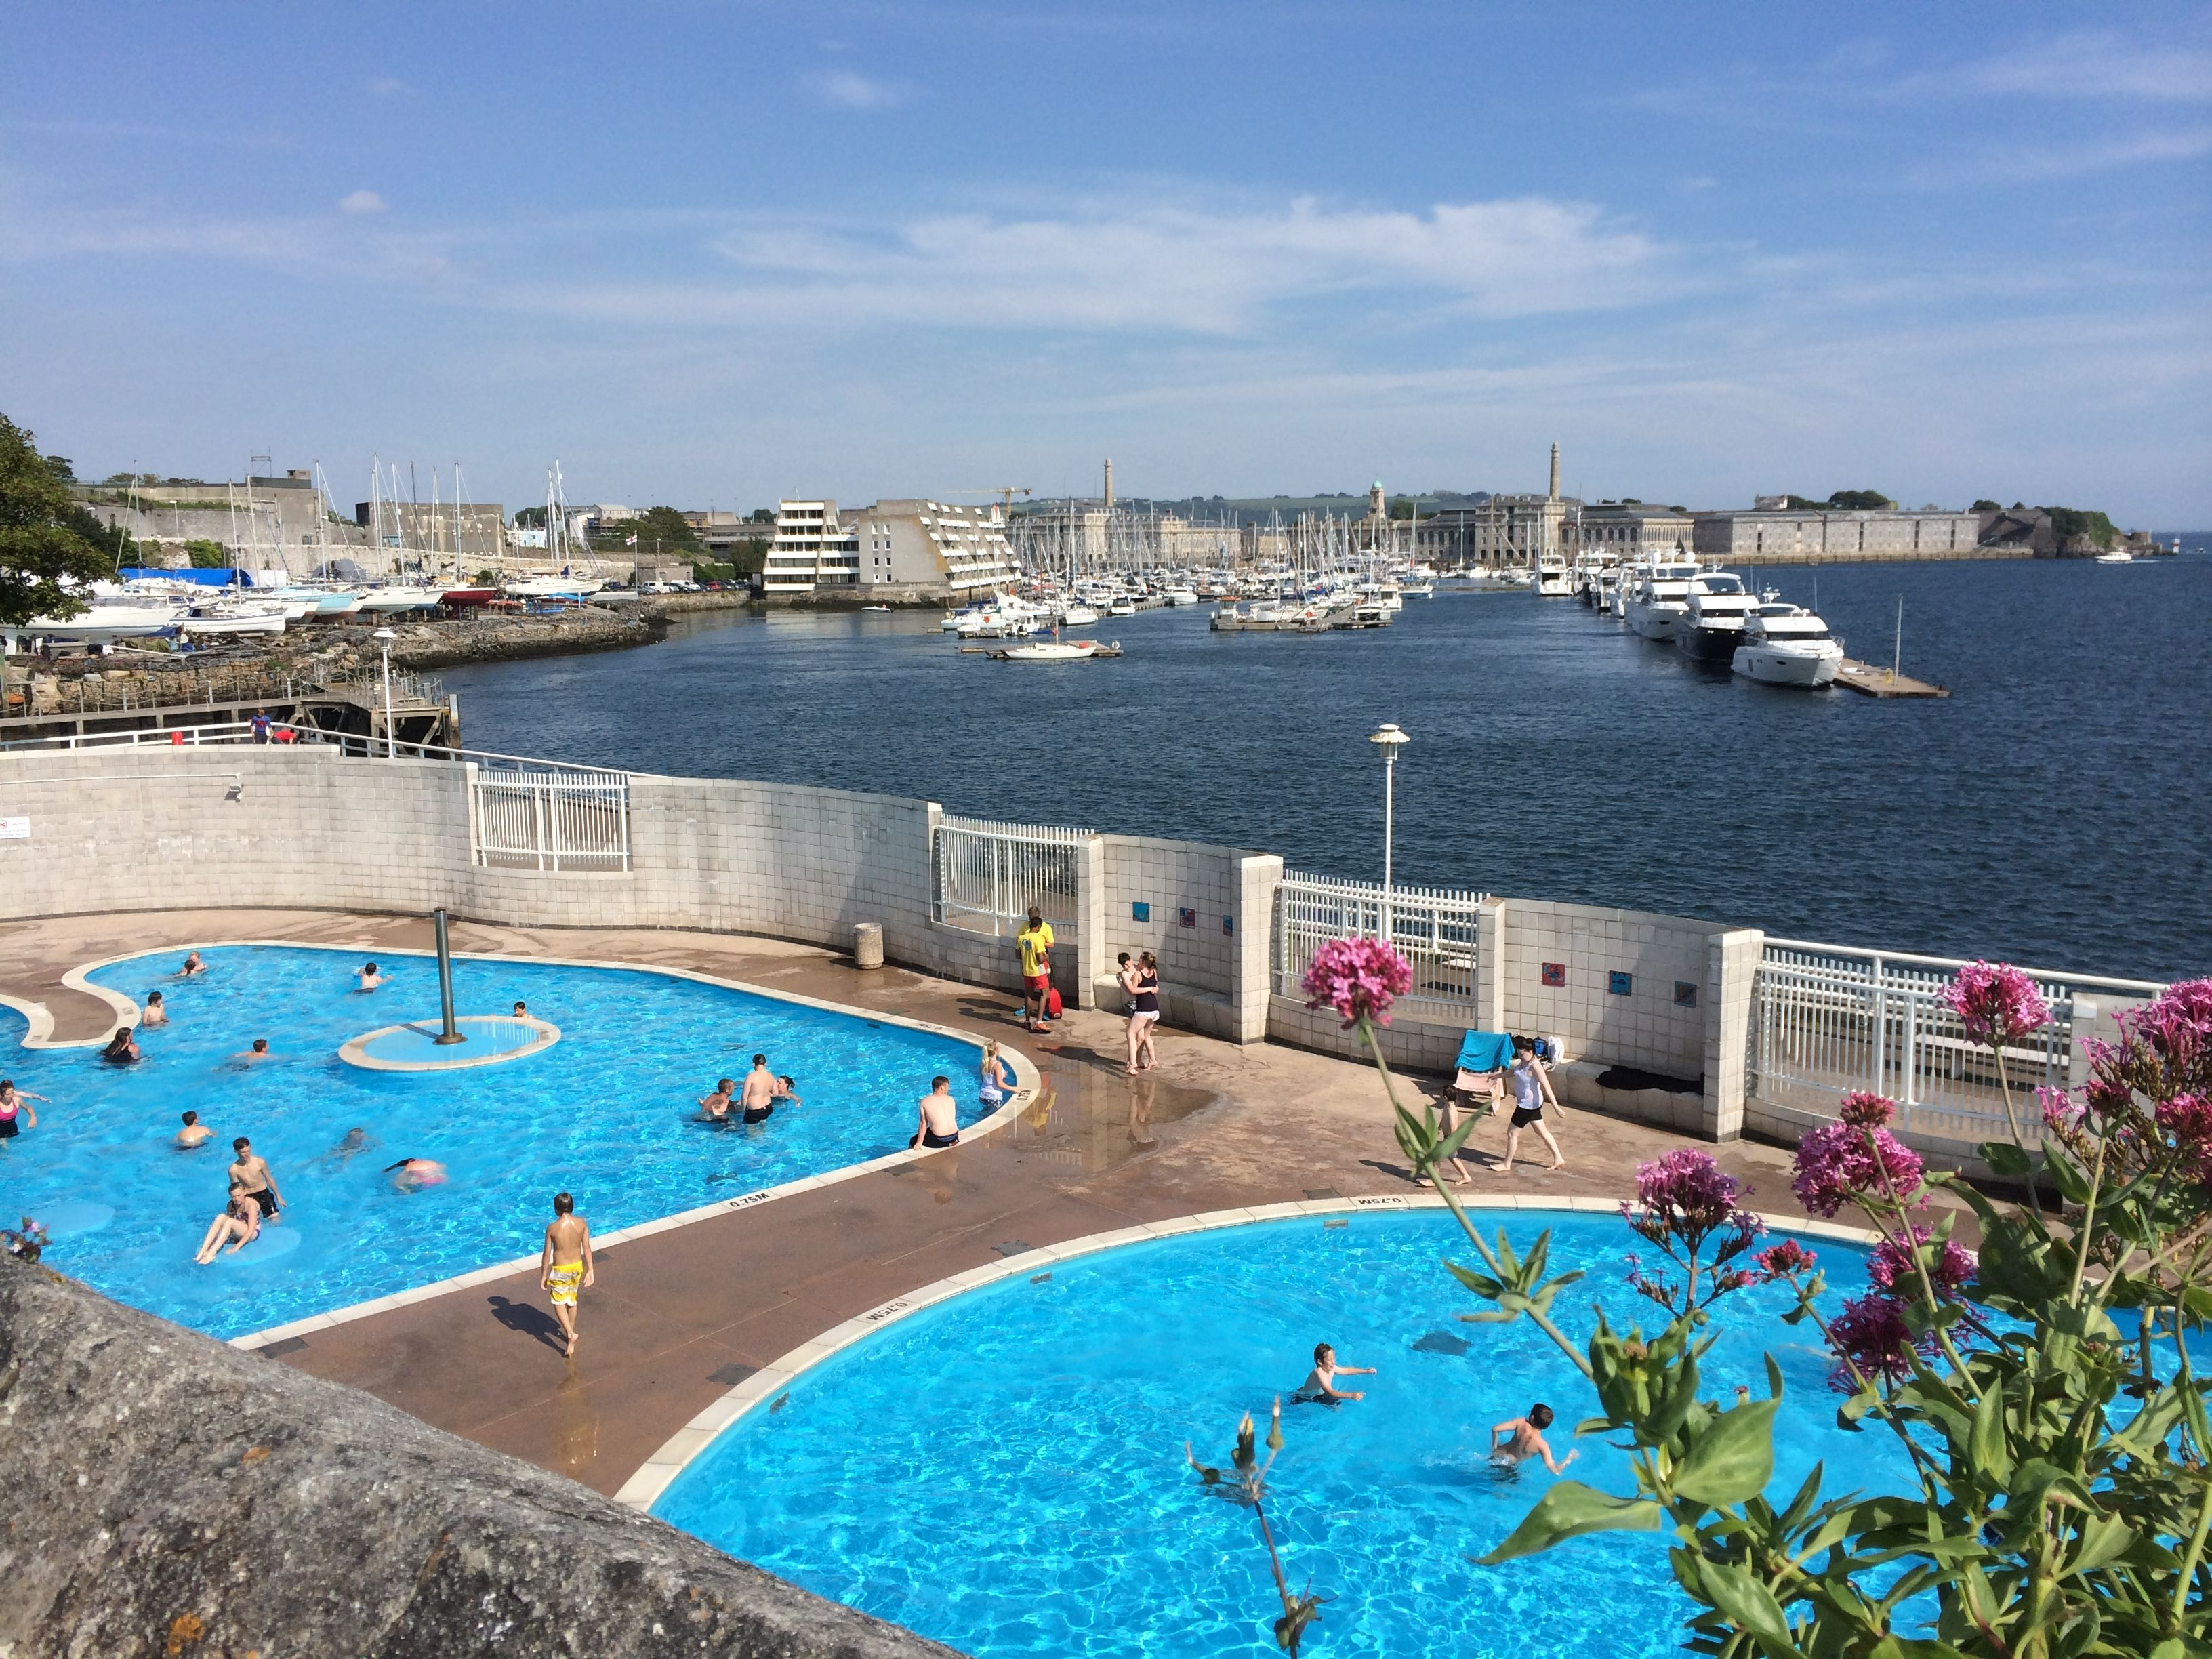 Mount wise outdoor pools moutwise plymouth outdoorswimmingpools for Outdoor swimming pools in england